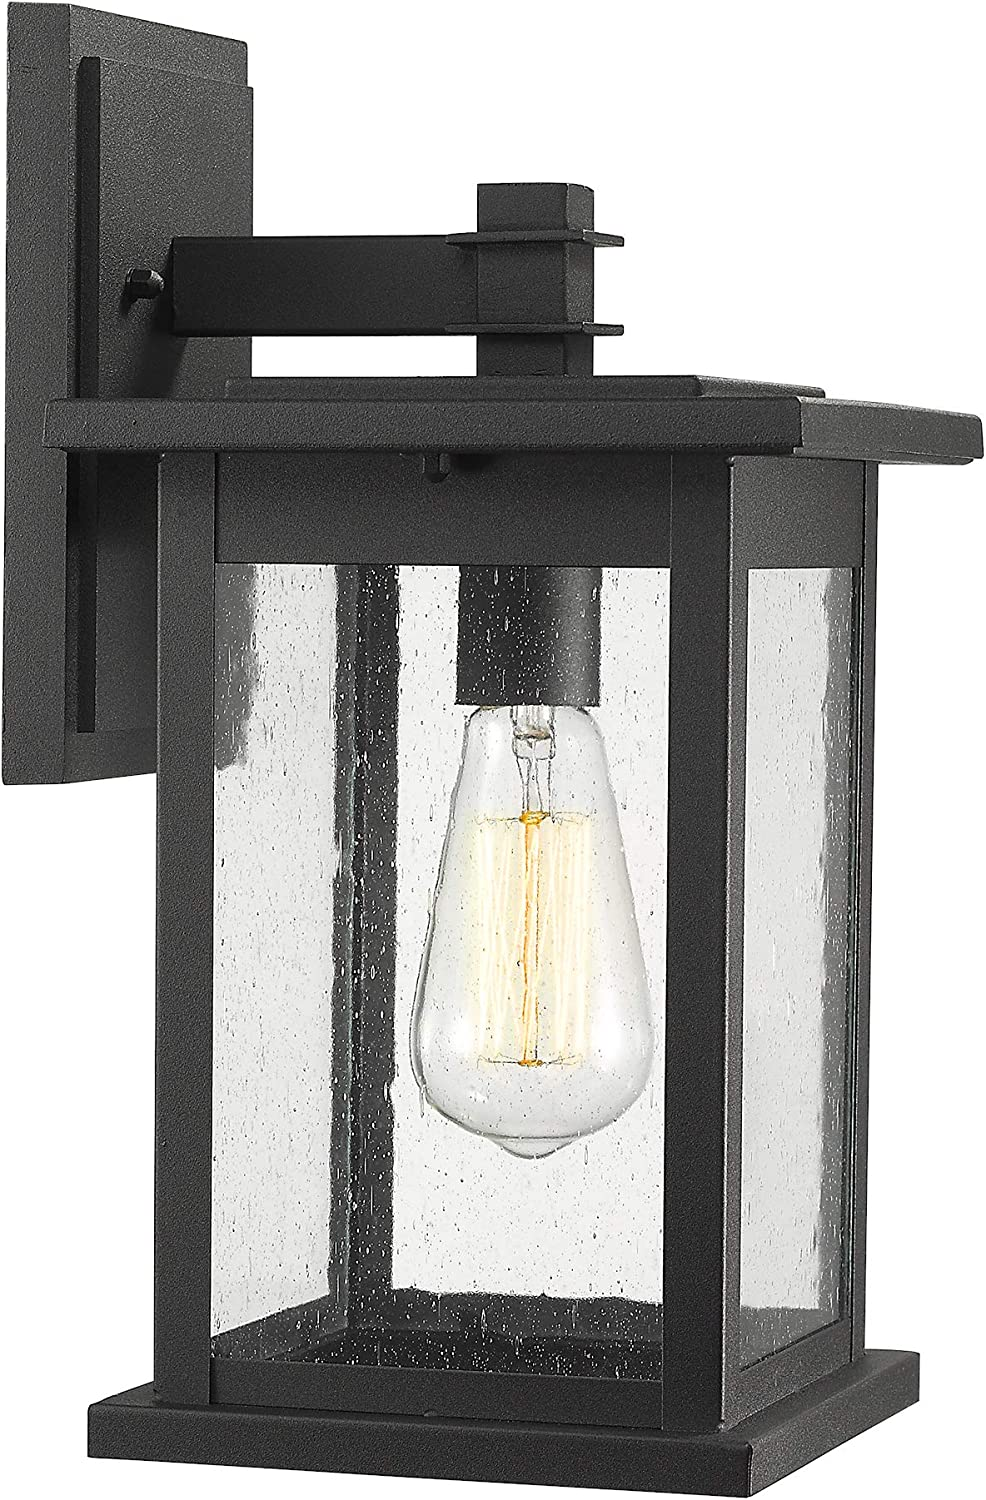 Emliviar Outside Lights For House 1 Light Outdoor Wall Lantern 14 Black Finish With Seeded Glass 1803ew2